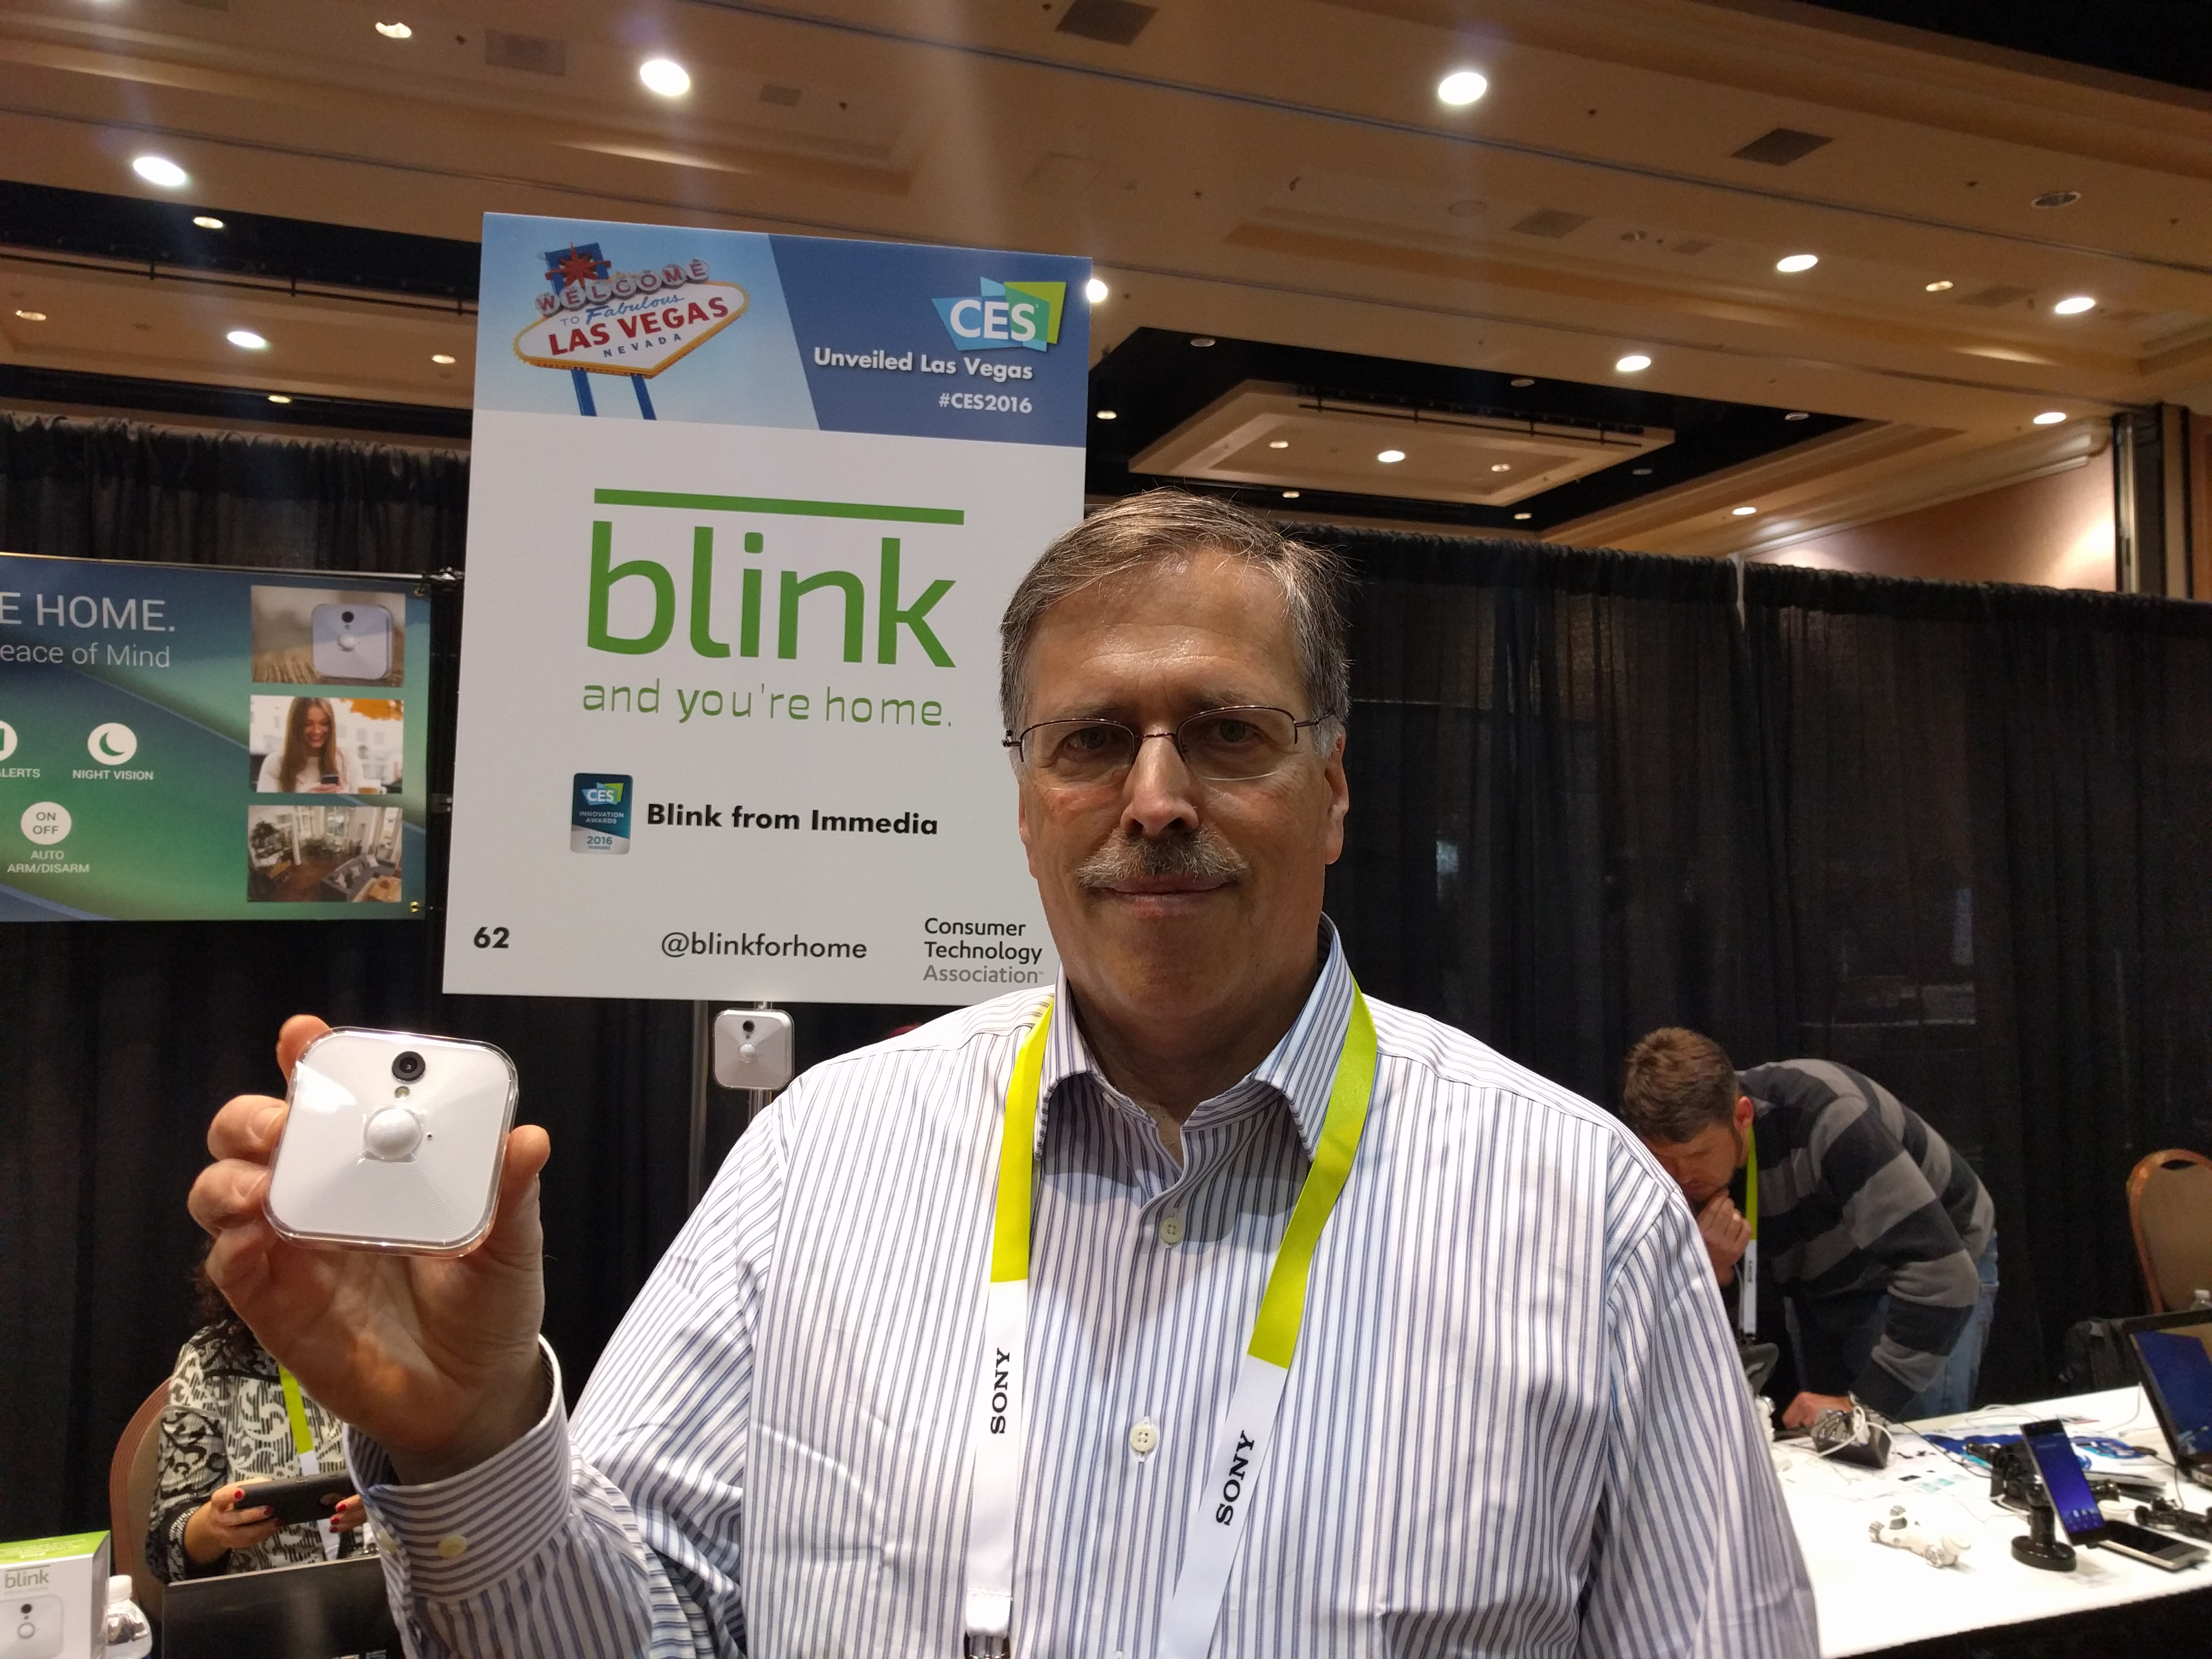 Peter Besen, CEO of Immedia, holding a Blink camera at CES 2016.